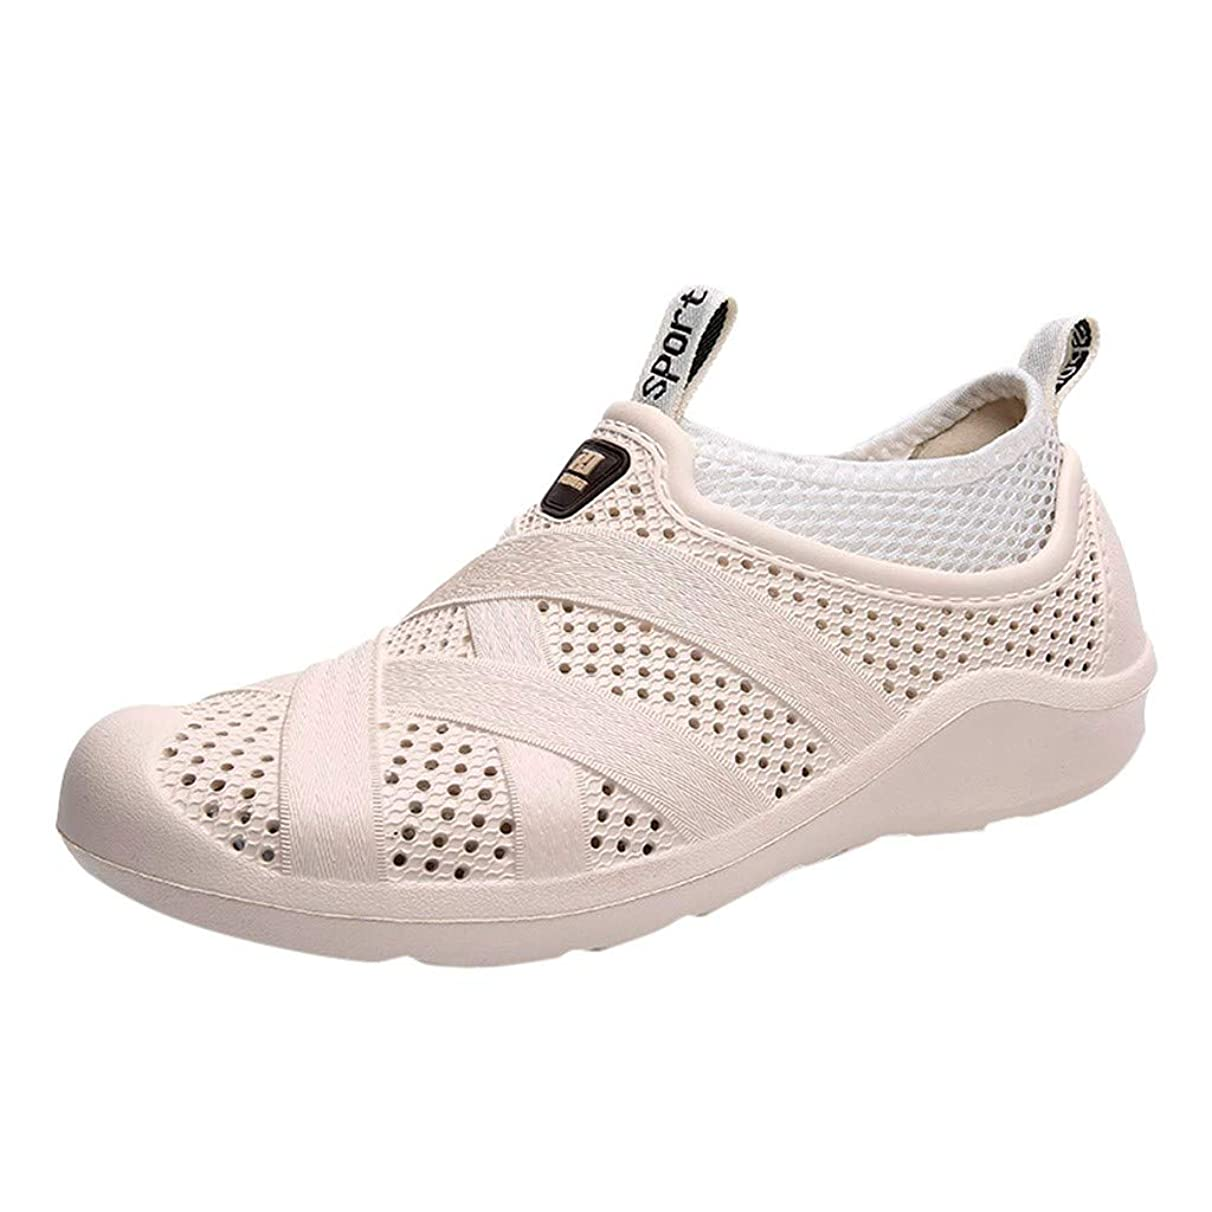 Aribelly Mother's Day Clearance Sale ! Free Running Shoe for Women and Men